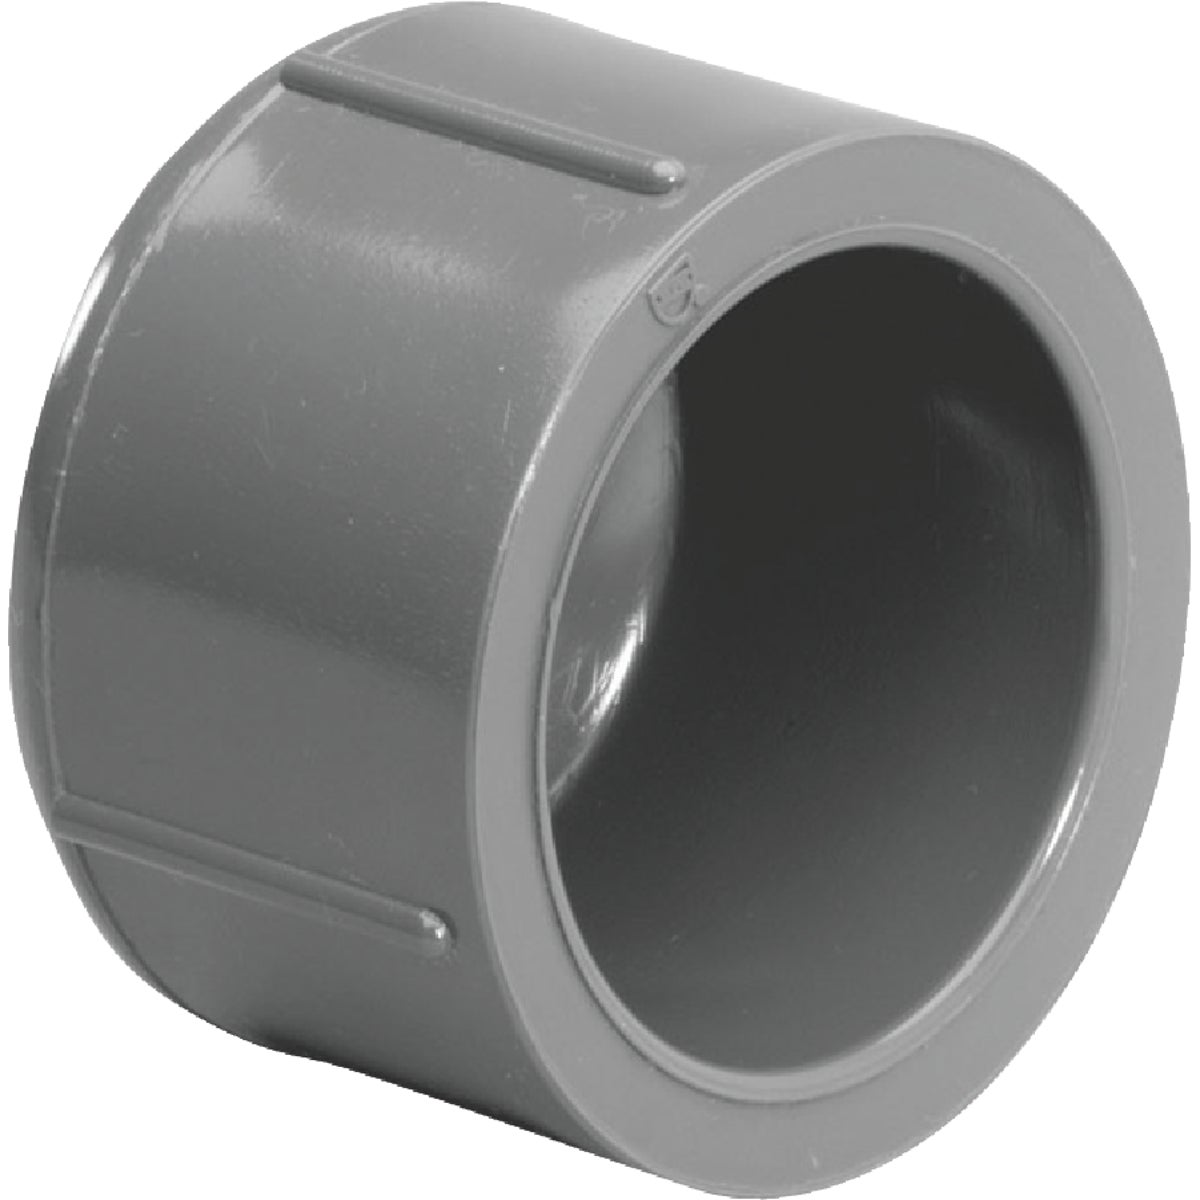 "1-1/4"" SCH80 PVC CAP - 301598 by Genova Inc"